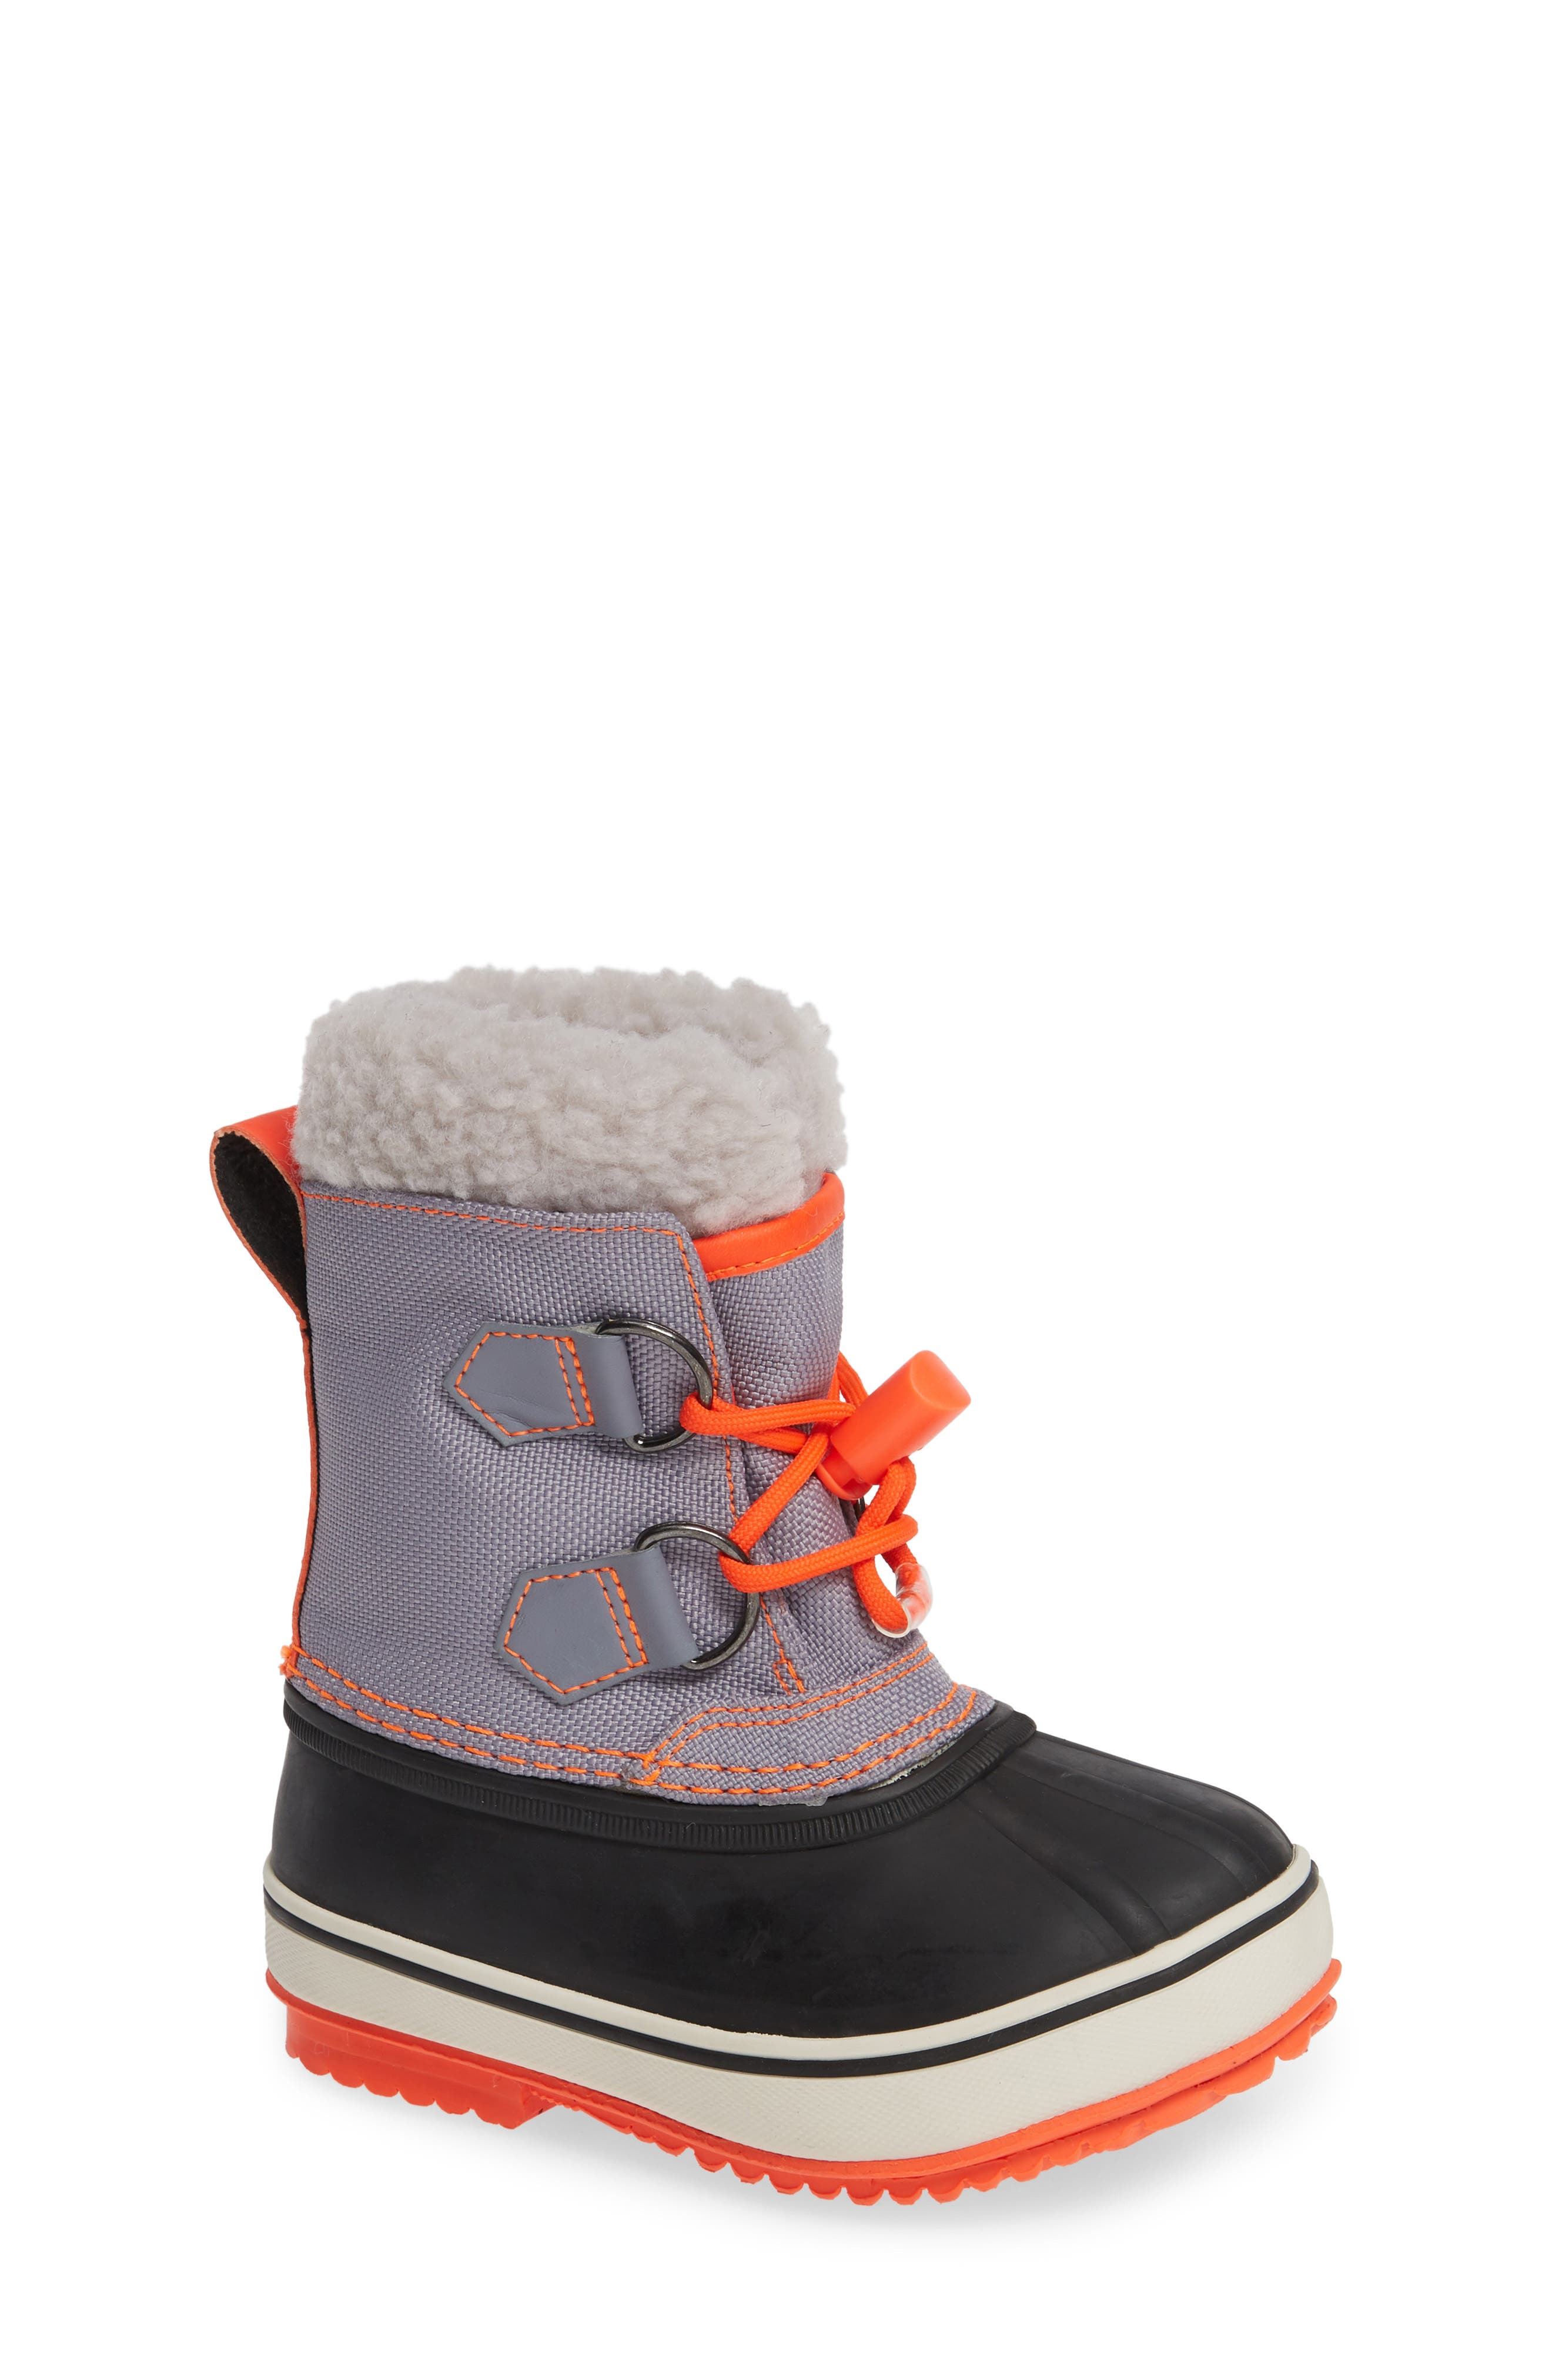 Waterproof Snow Boots,                             Main thumbnail 1, color,                             STARBOARD BLUE